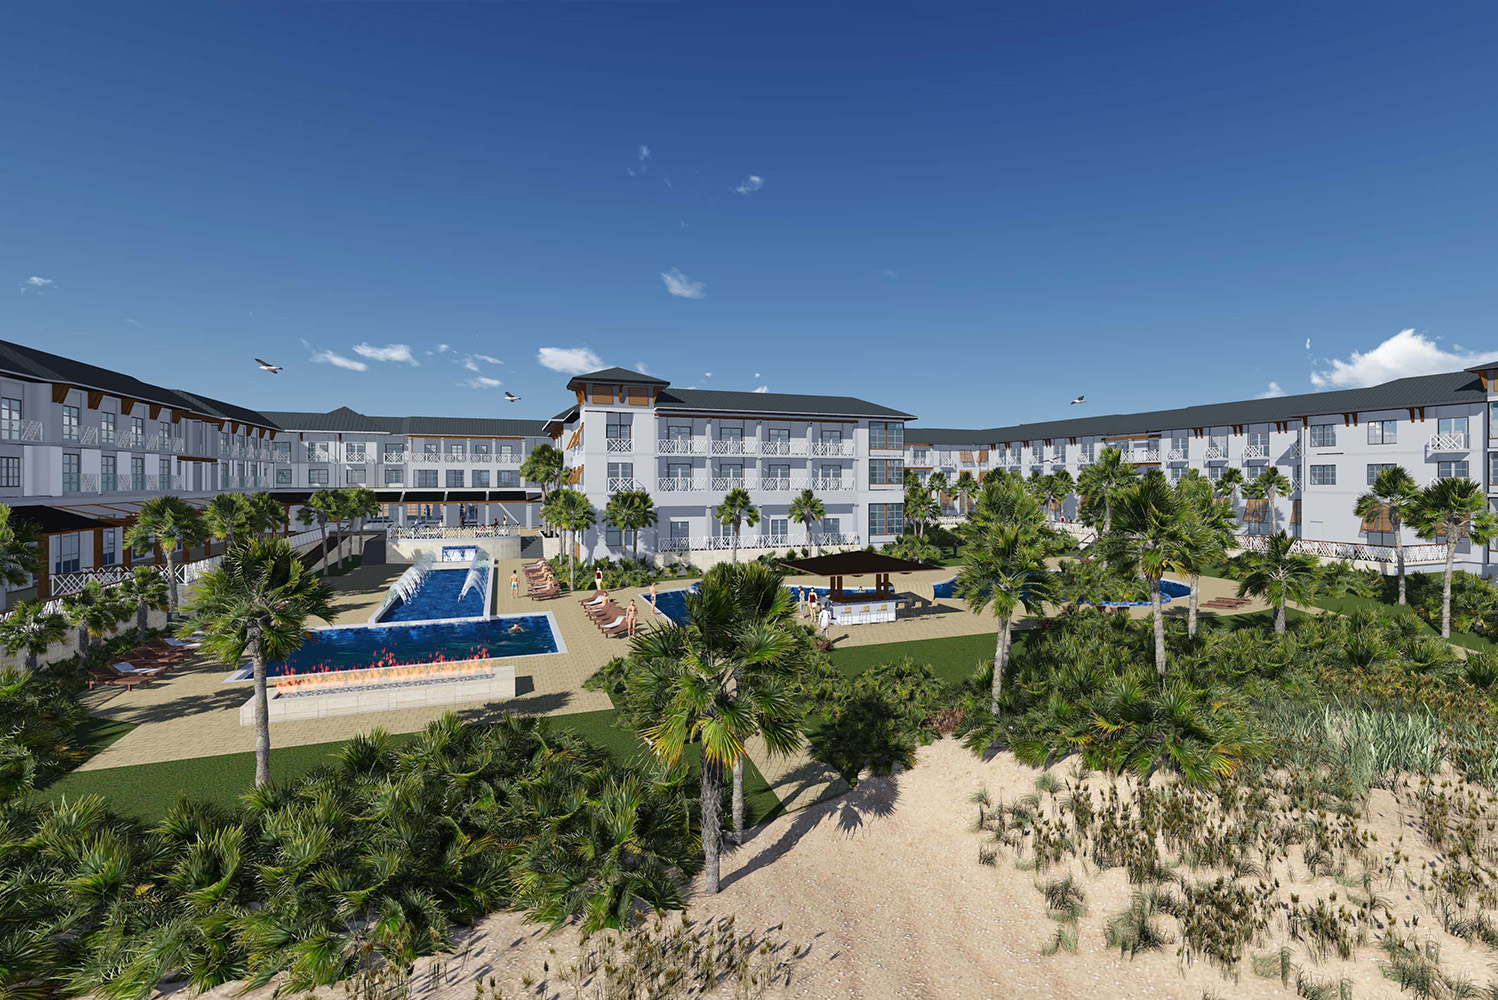 The resort will have 175 keys, including king, studio king, two-bedroom and queen-queen suites, and several outdoor venues with ocean views.